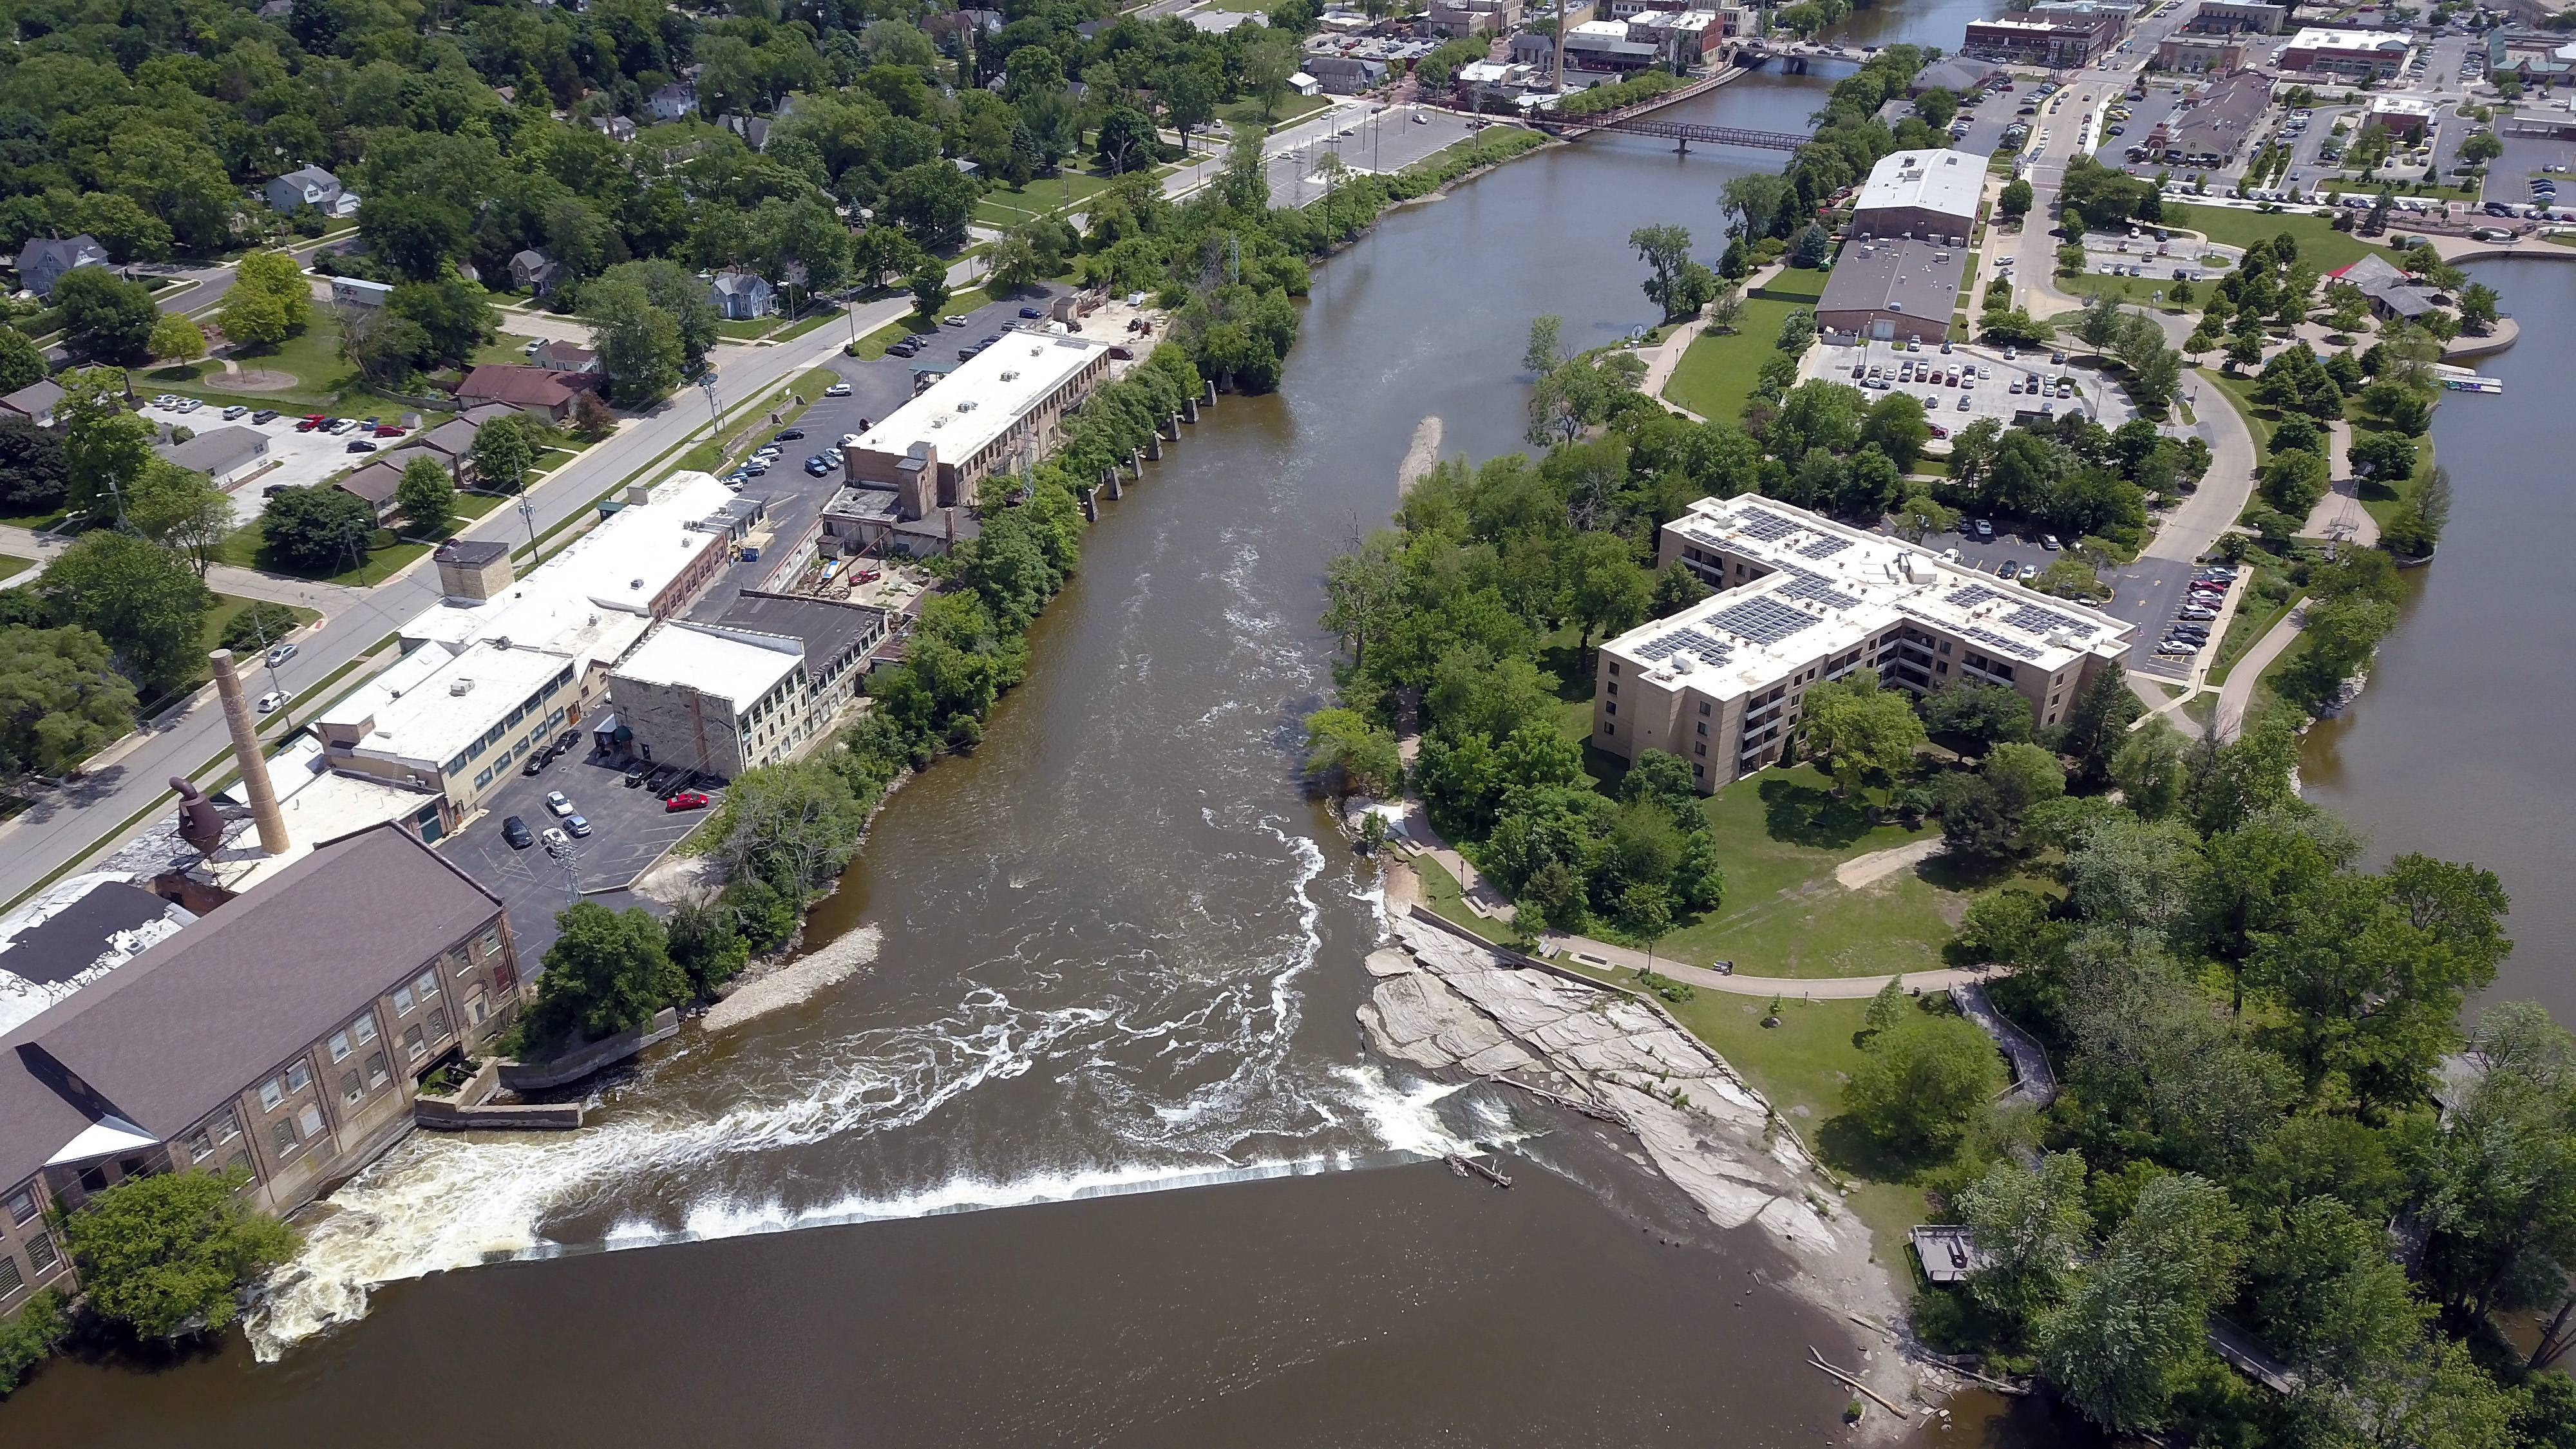 A consulting lawyer's research shows Batavia, not the state, owns the crumbling dam on the Fox River.